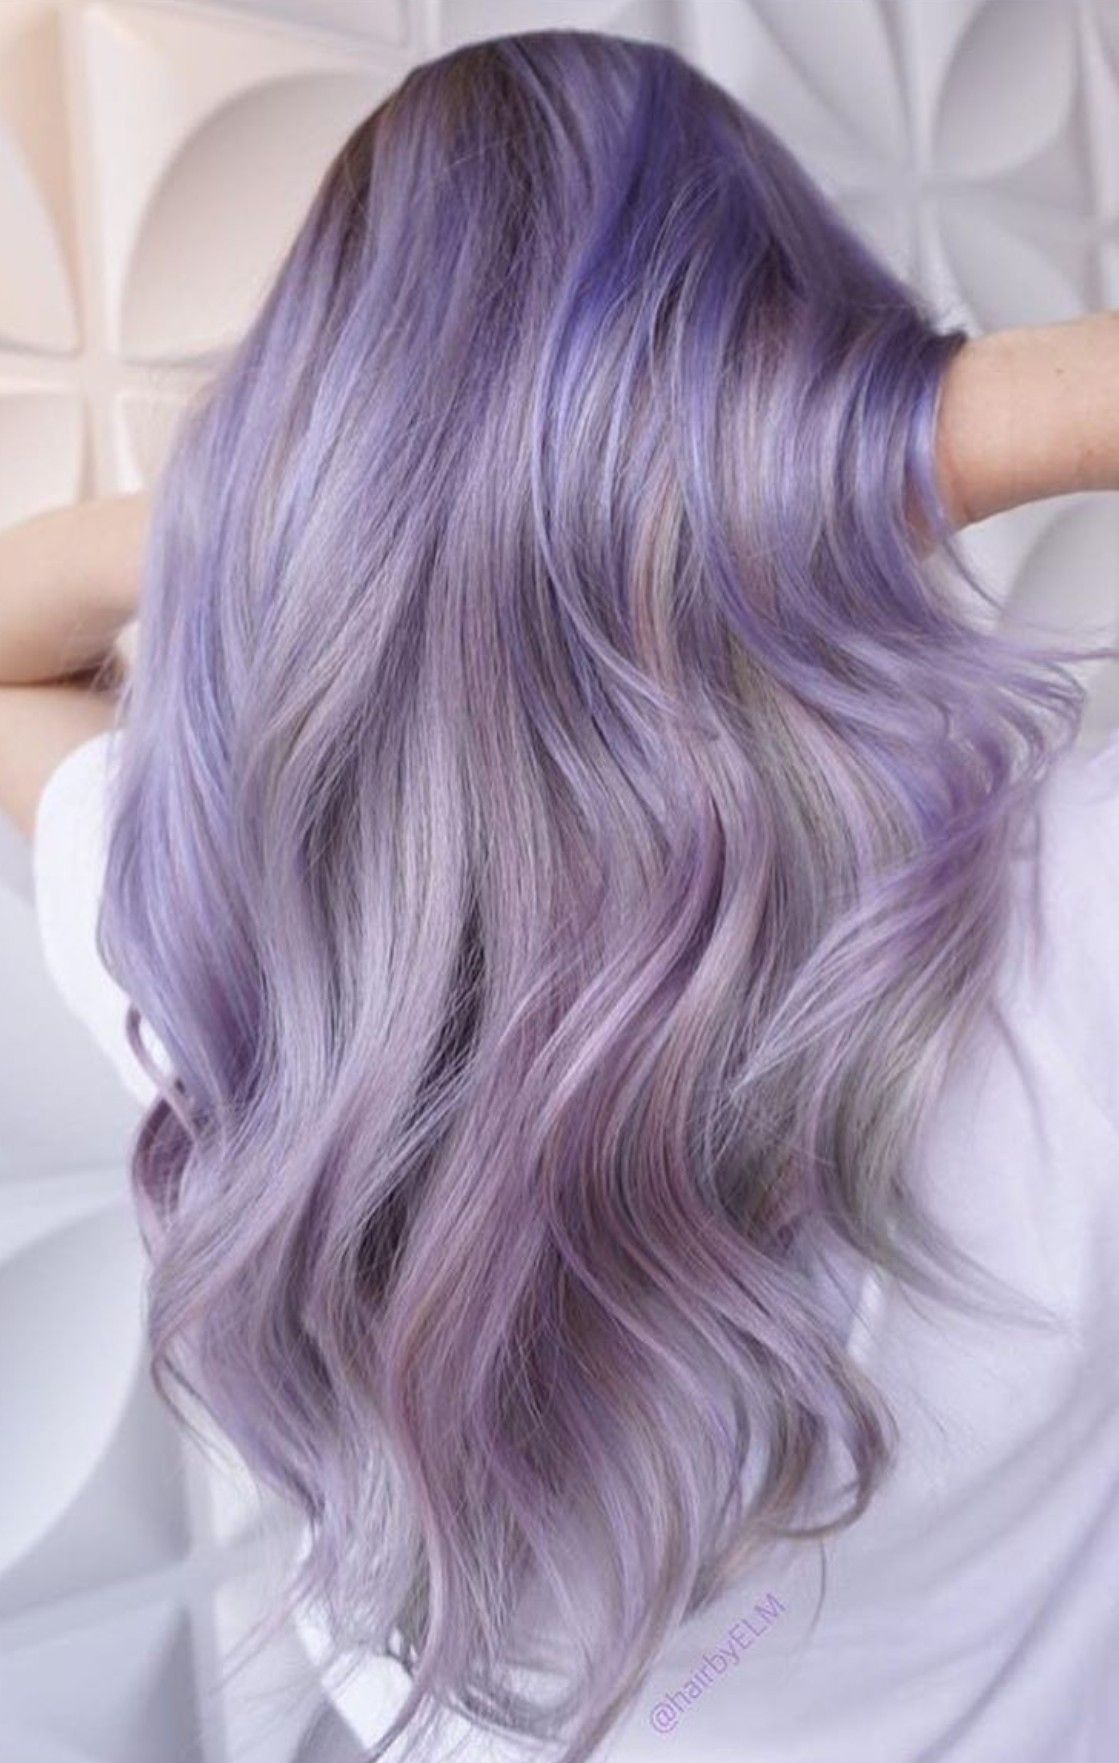 Pin By Christina Watt On Favorites In Hair Lavender Hair Colors Lavender Hair Ombre Light Purple Hair